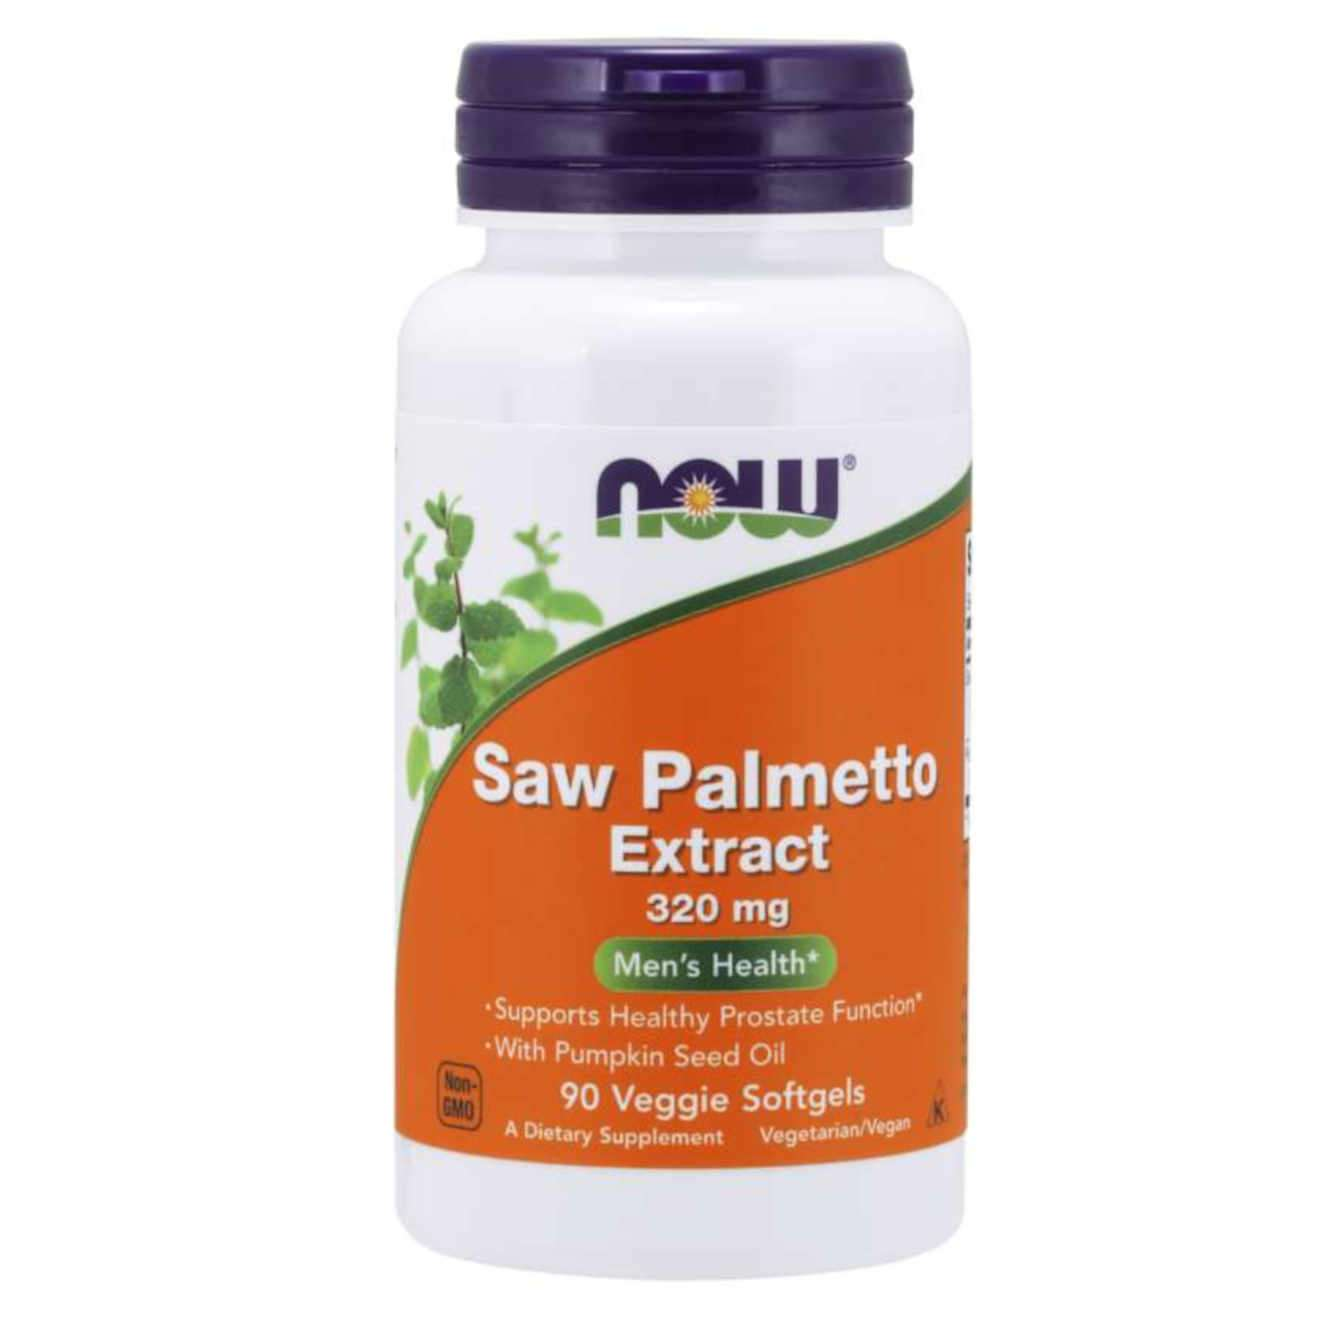 SAW PALMETTO EXTRACT 320mg - 90 veg softgels